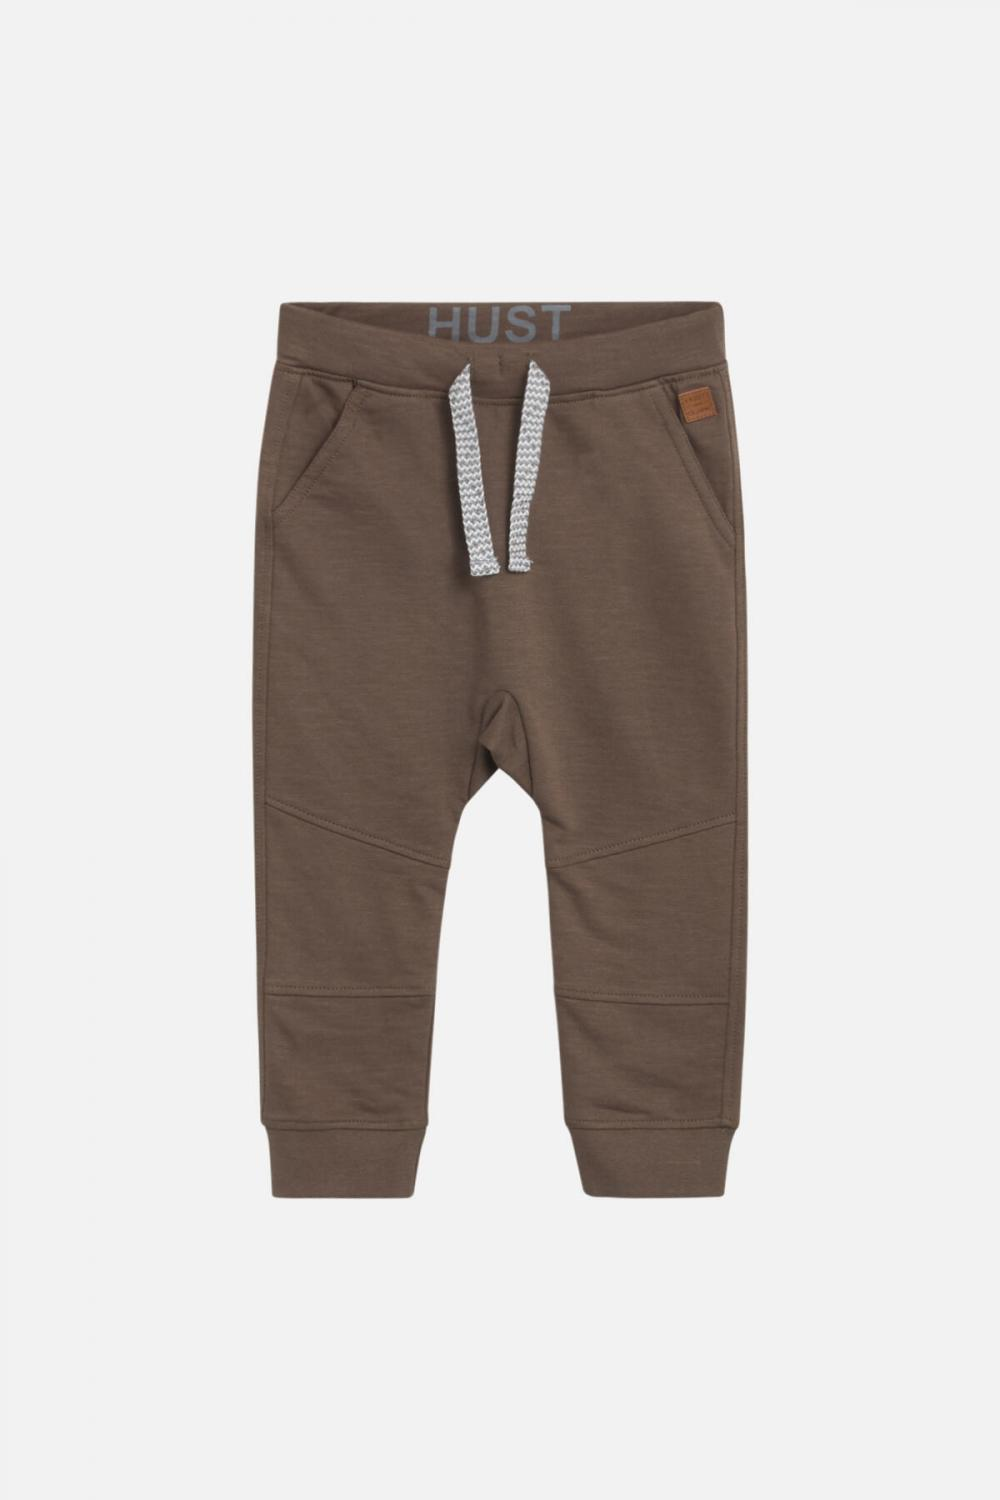 HUST&CLAIRE SWEATPANTS 49111985 BROWN